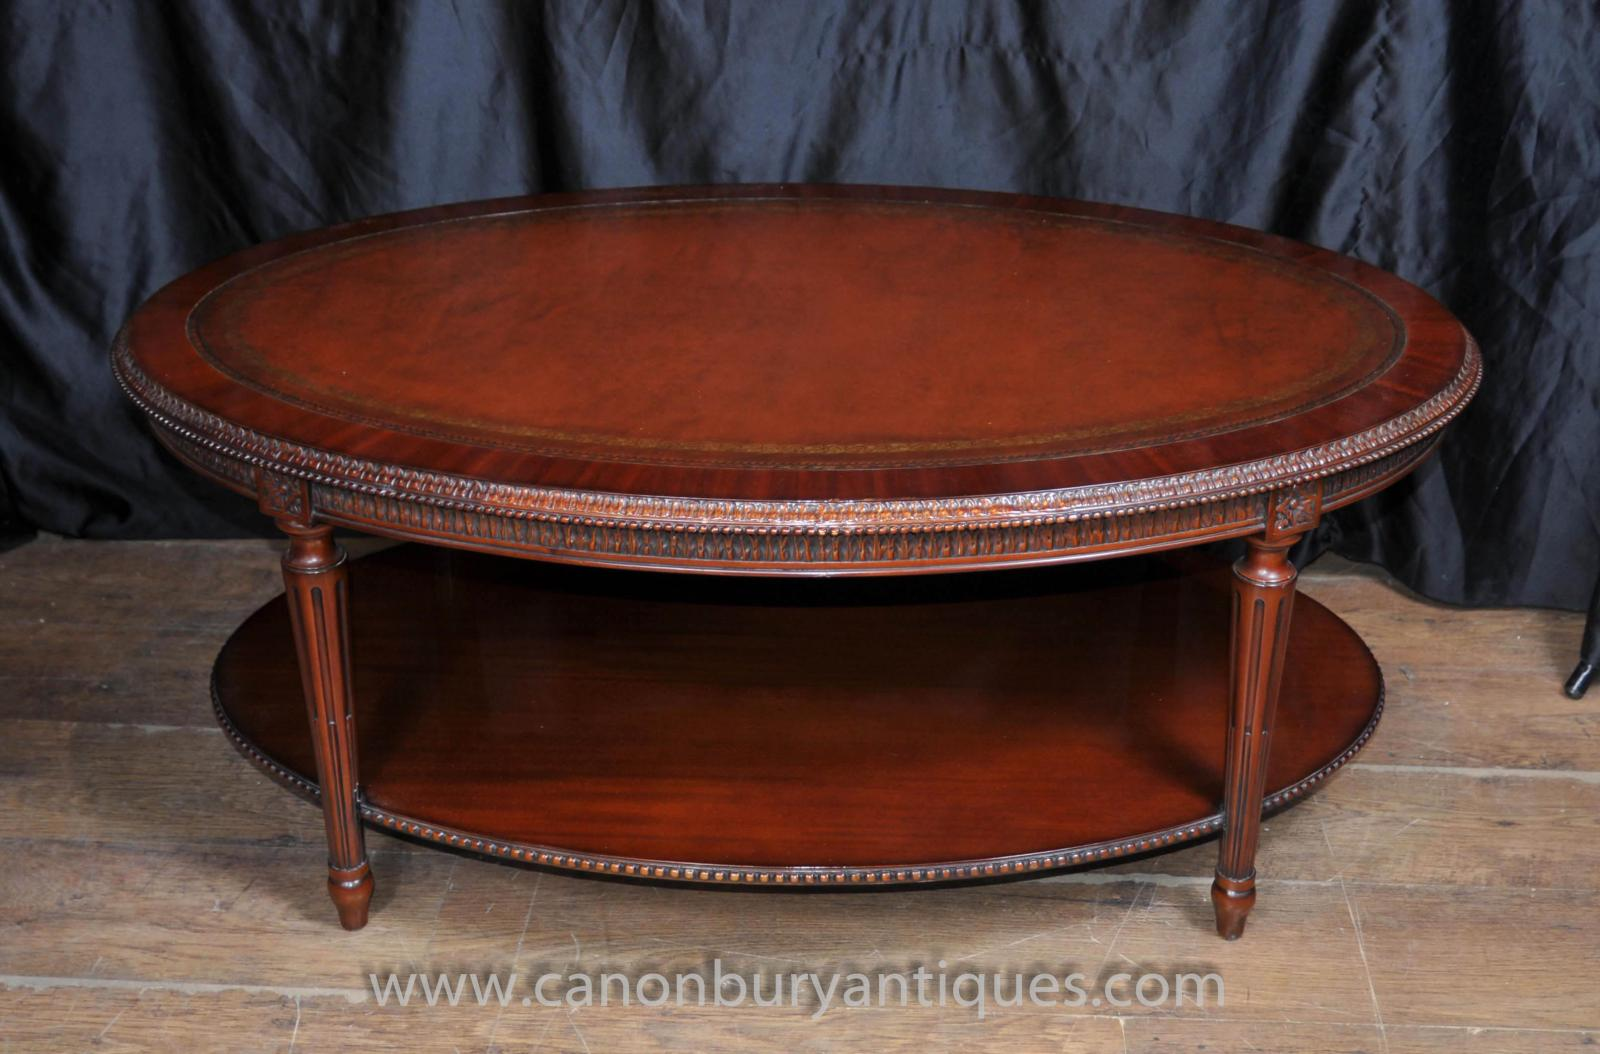 Regency oval coffee table mahogany leather top tables ebay piece description gorgeous regency style coffee table geotapseo Images